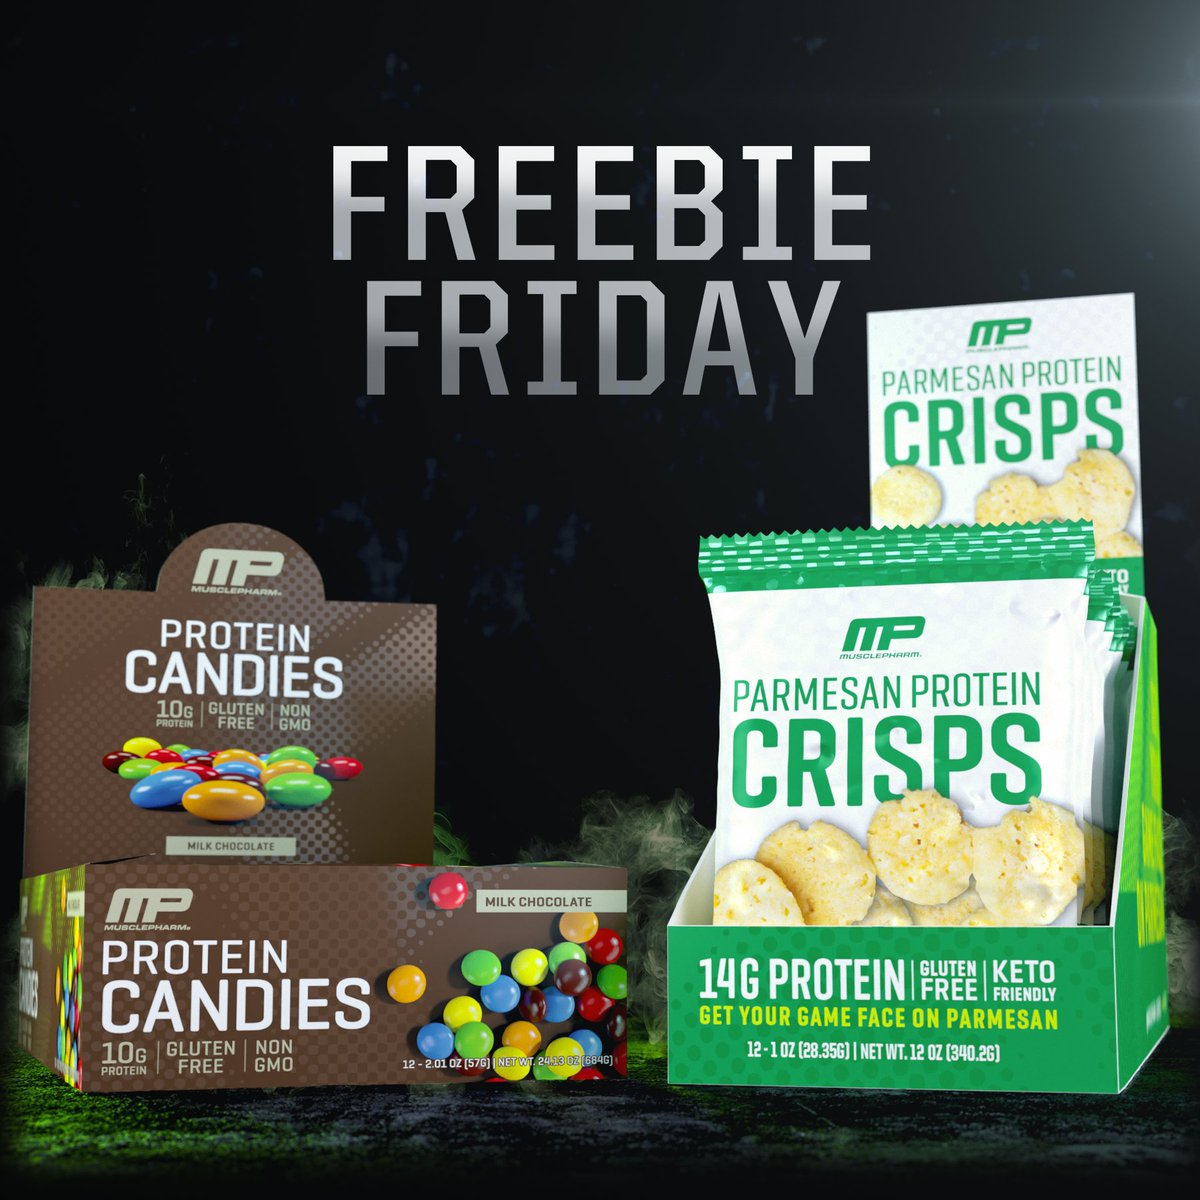 Chance to win these snacks on FB and IG! Not feeling lucky? Shop now on Amazon!  Candies: https://t.co/FK4JqUlYHb Crisps: https://t.co/COWVGR7FBS Last week's winner was Precious Brown! https://t.co/GRkycTQ2rA